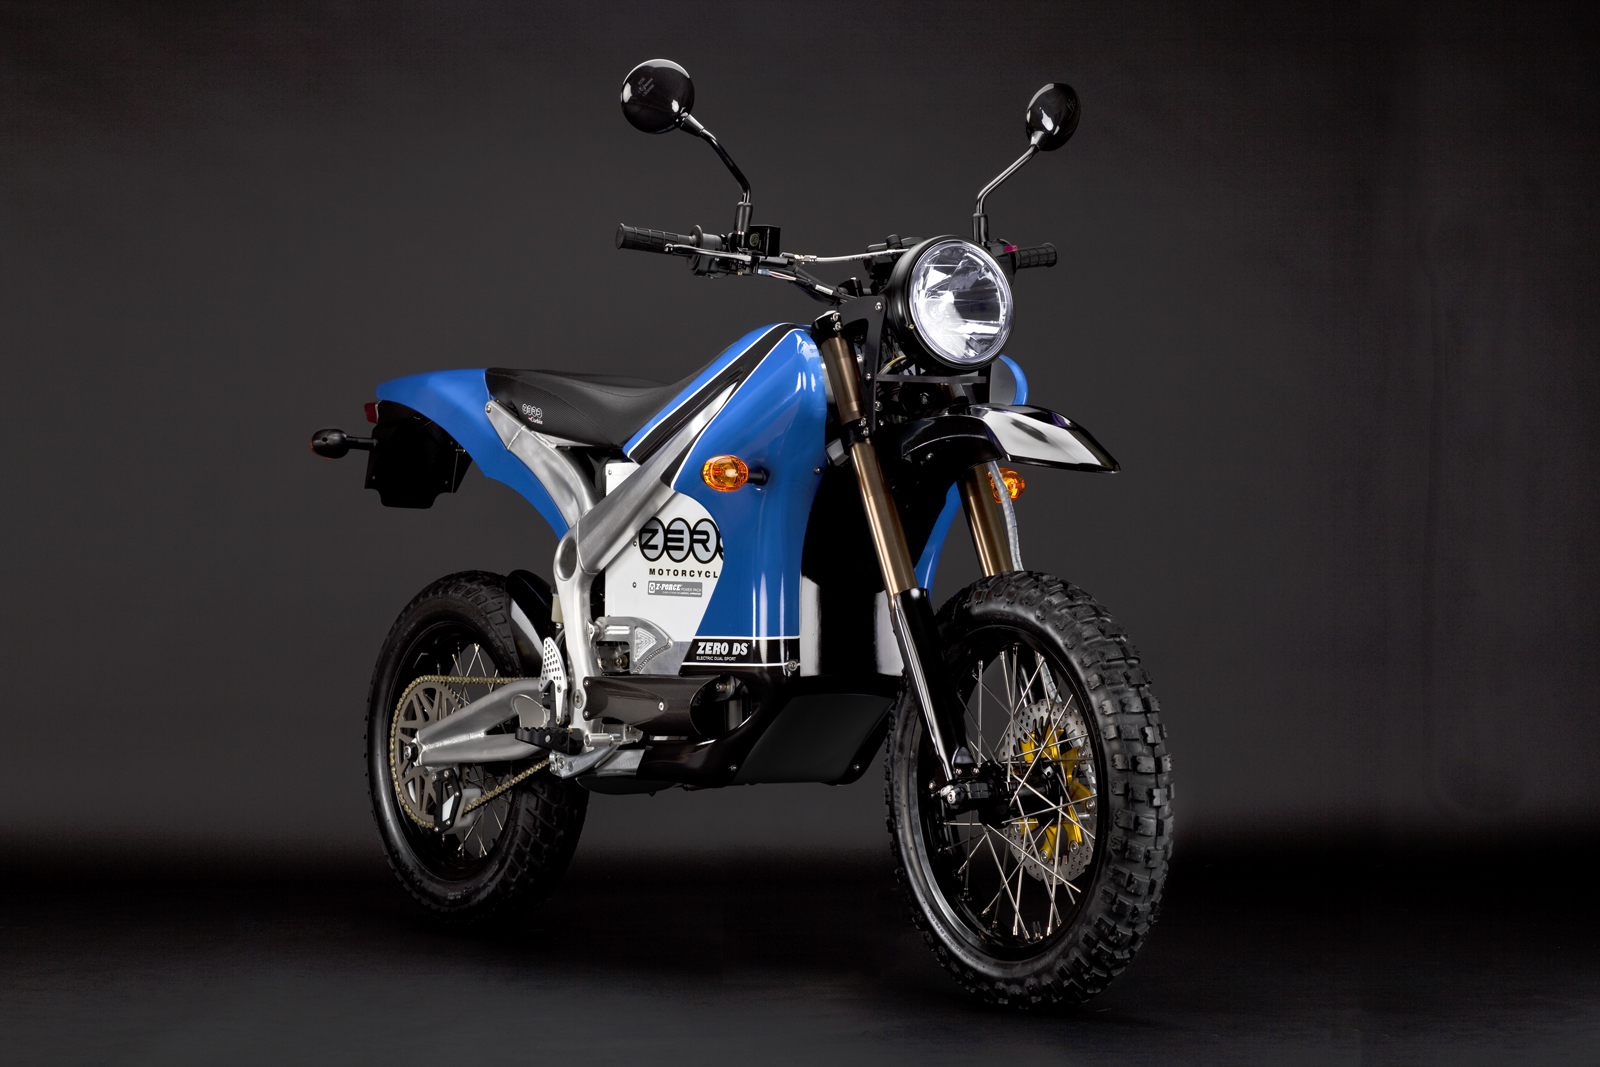 2010 Zero DS Electric Motorcycle: Blue Angle